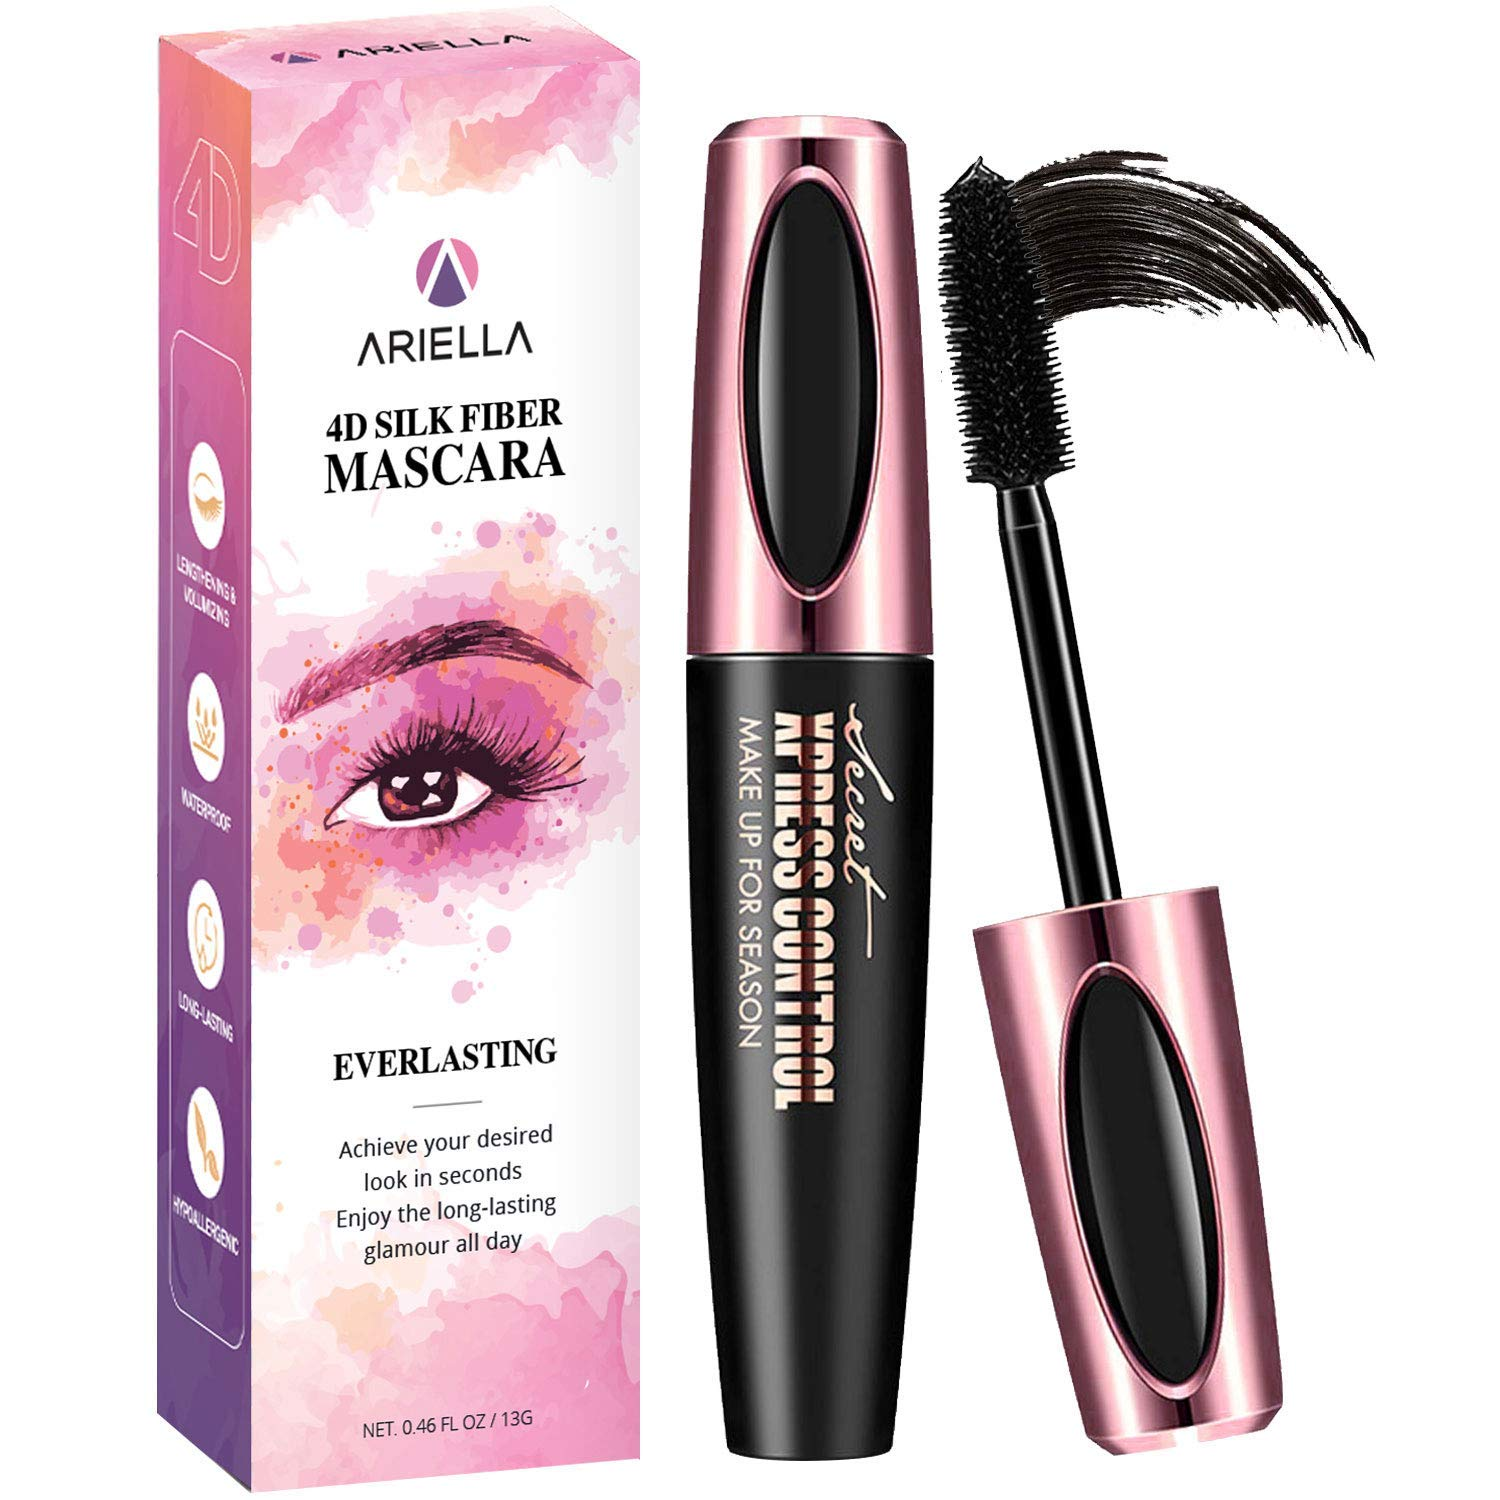 3398e64c443 Natural 4D Silk Fiber Lash Mascara, Waterproof & Smudge-Proof, All Day  Exquisitely Lush, Full, Long, Thick, Smudge-Proof Eyelashes